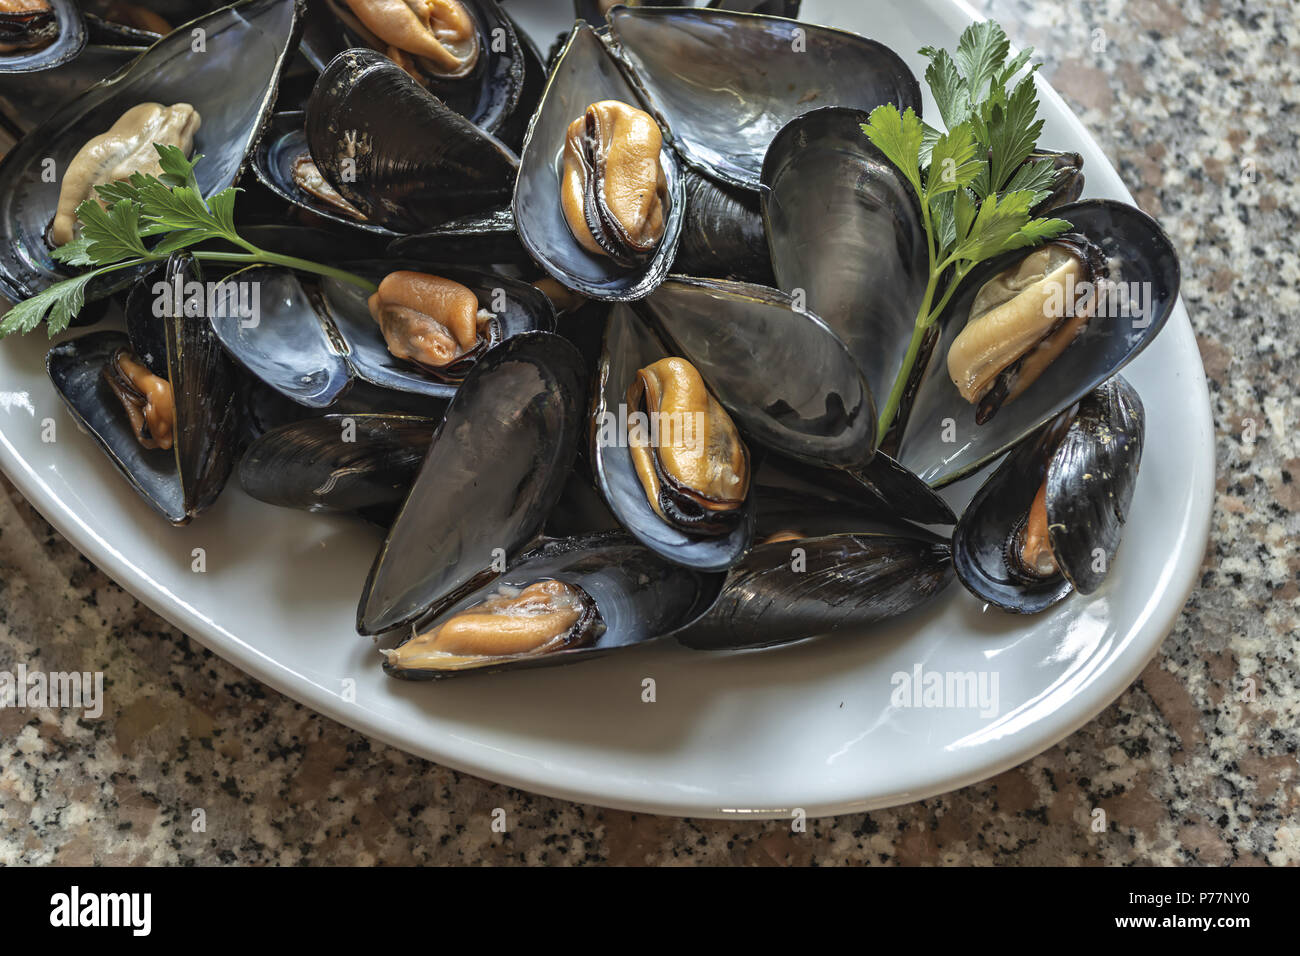 Mussels 5 - Stock Image